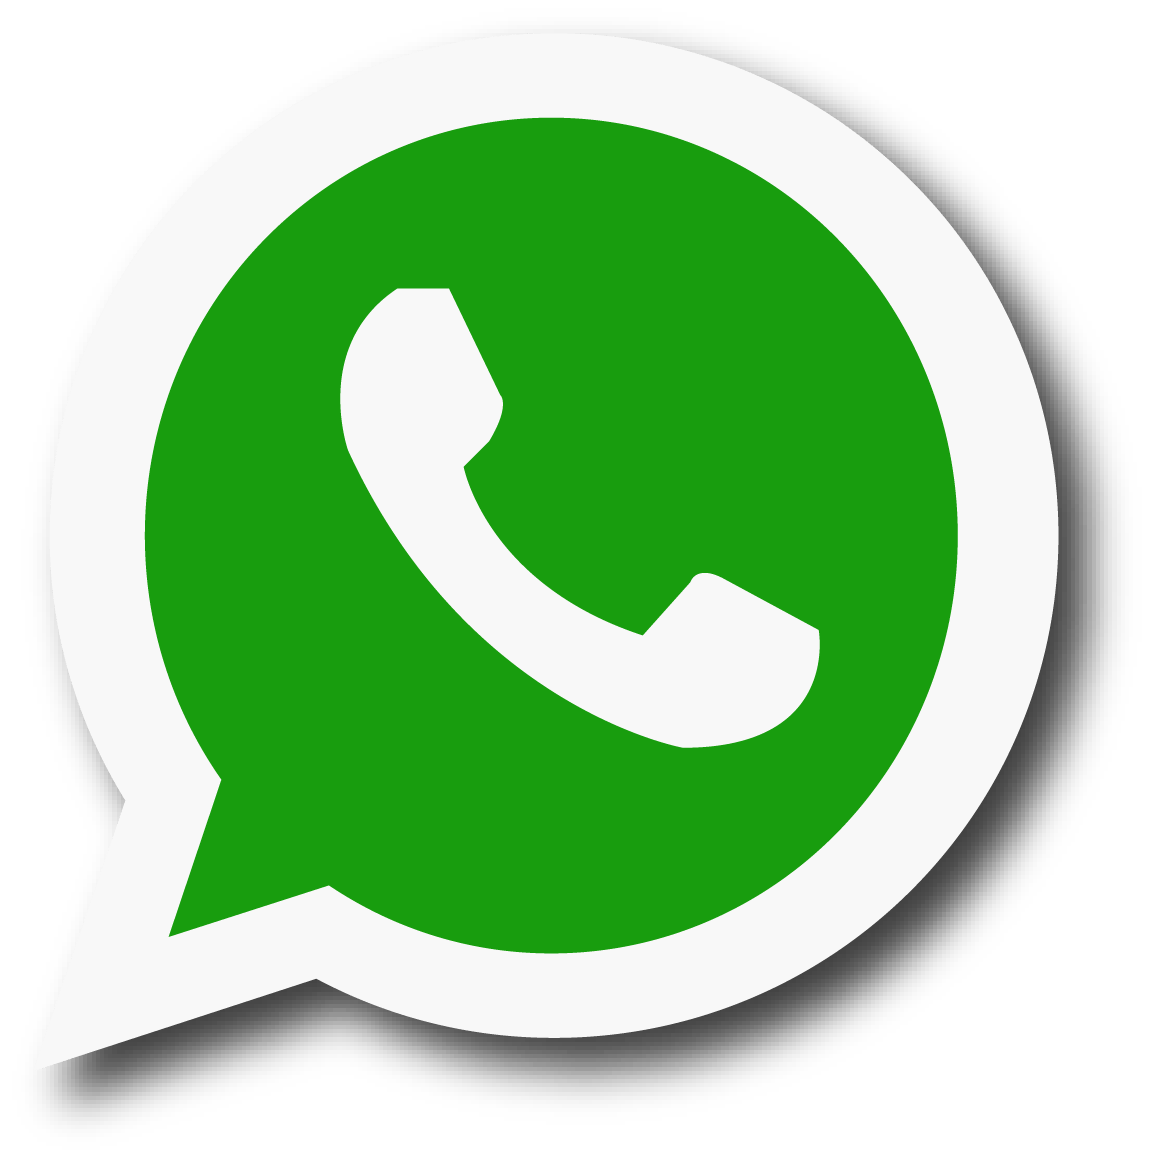 whatsapp logo 3